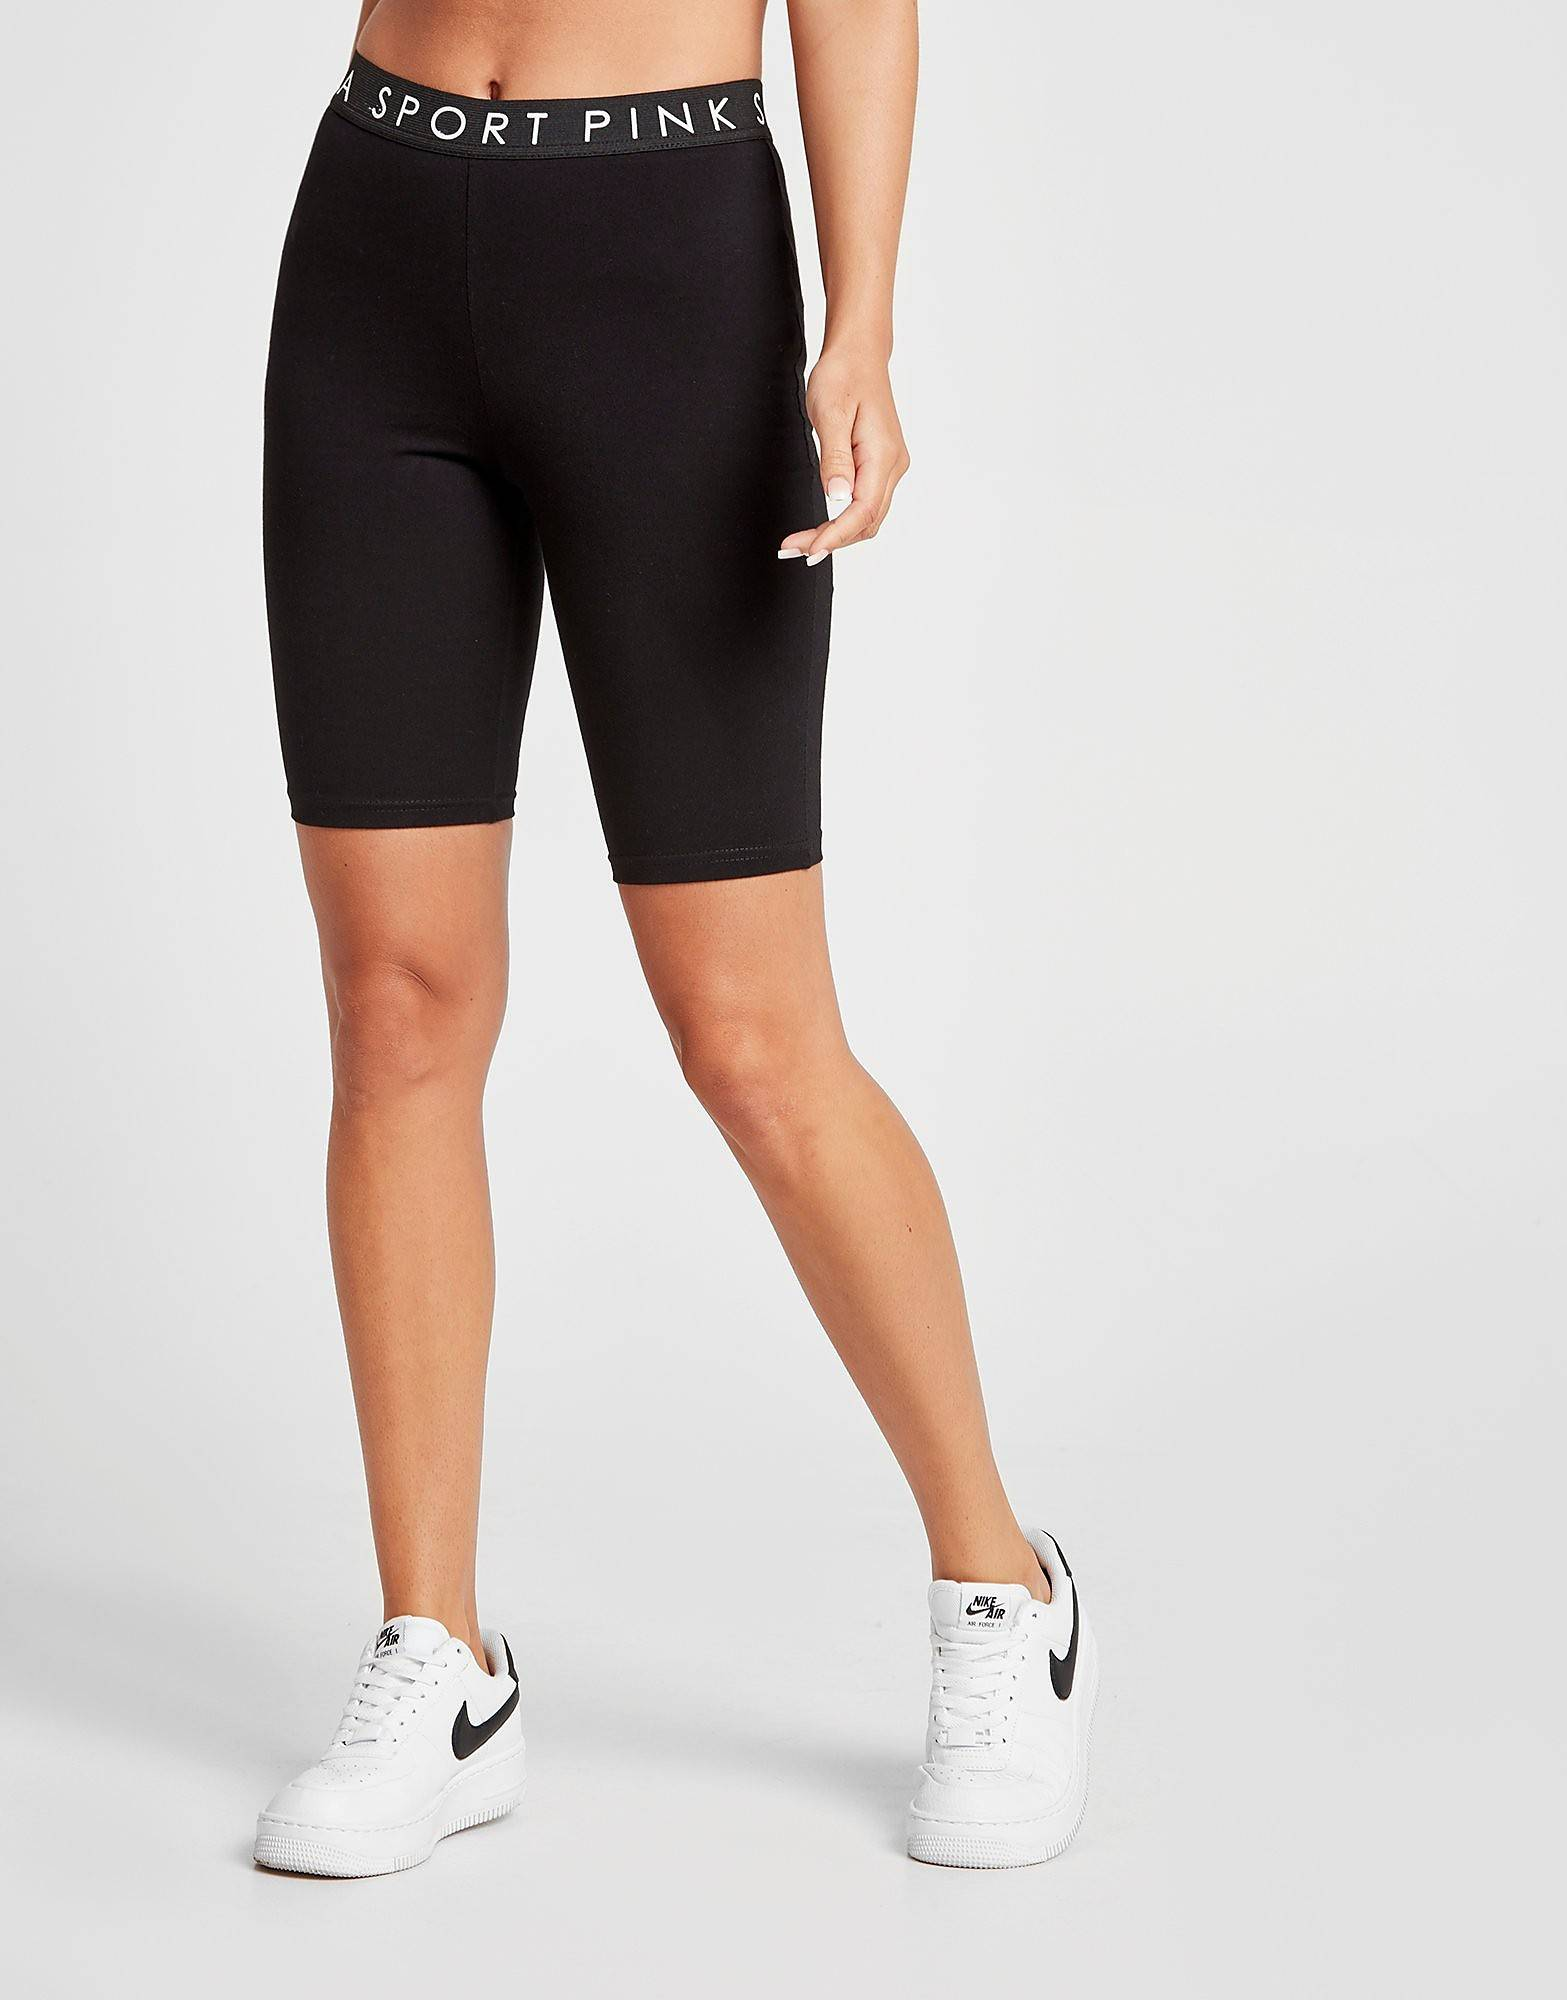 Image of Pink Soda Sport Tape Cycling Shorts - Only at JD - Womens, Musta